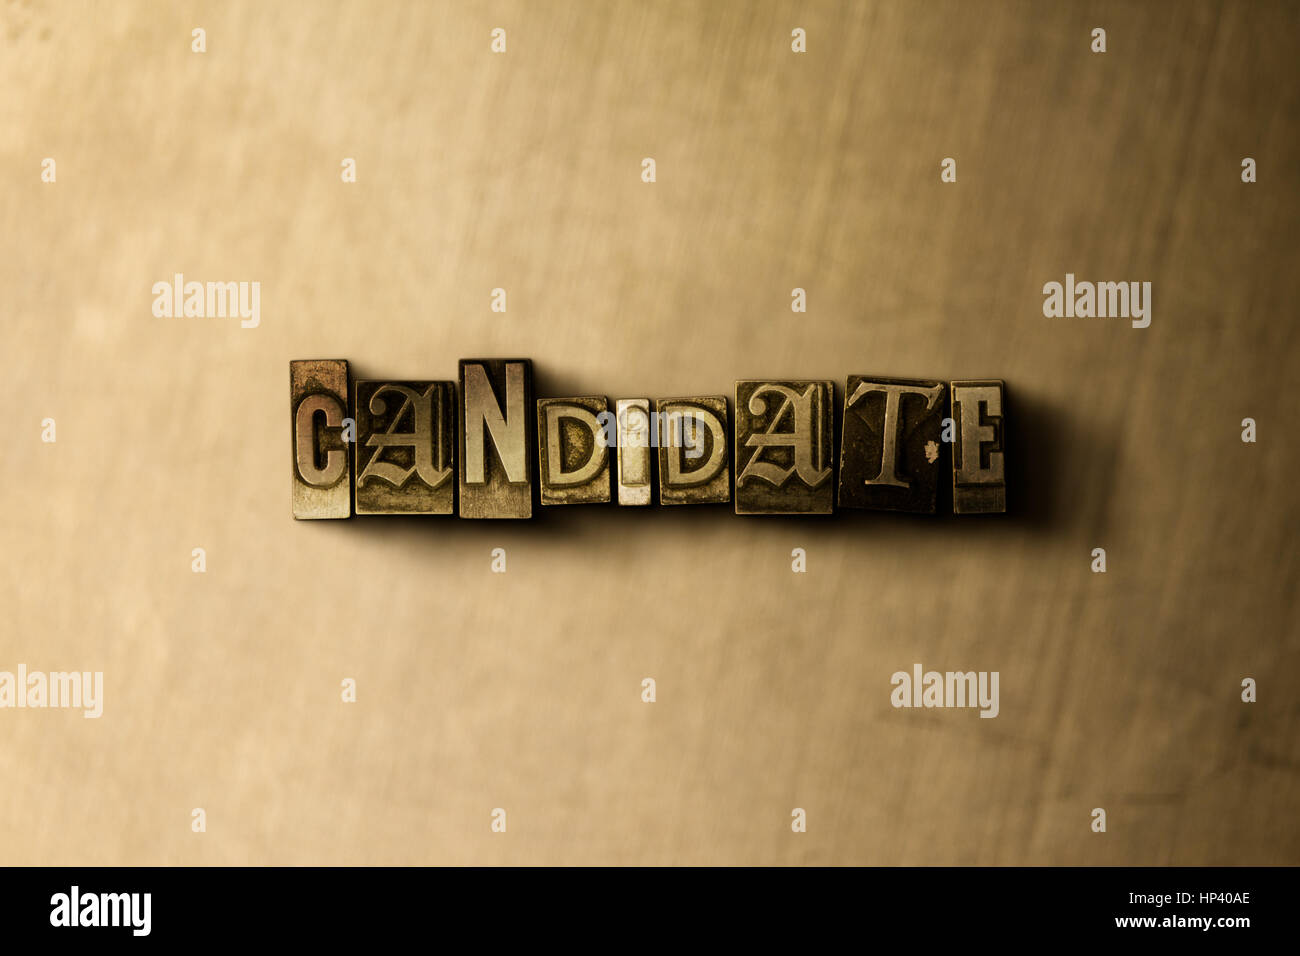 CANDIDATE - close-up of grungy vintage typeset word on metal backdrop. Royalty free stock illustration.  Can be - Stock Image